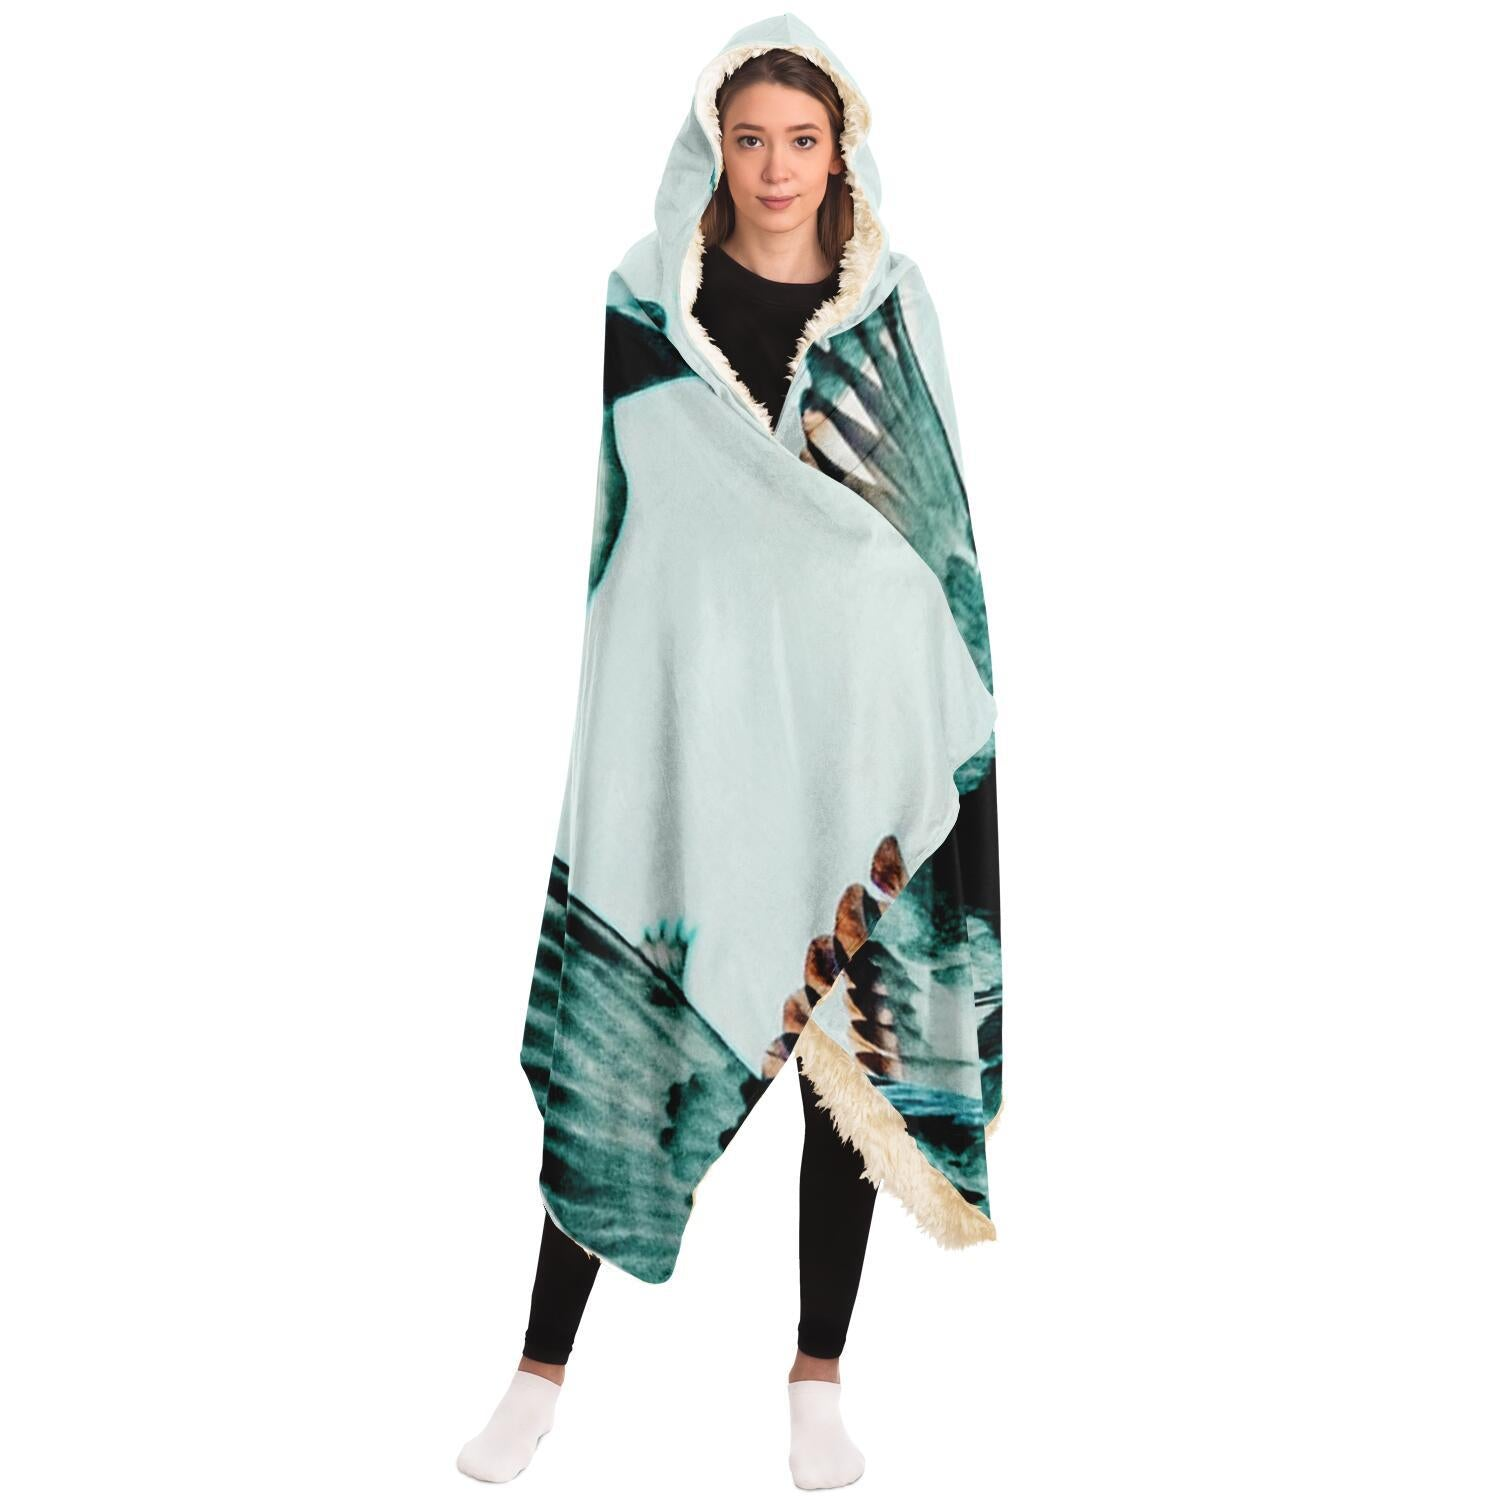 Birds in Flight Hooded Blanket